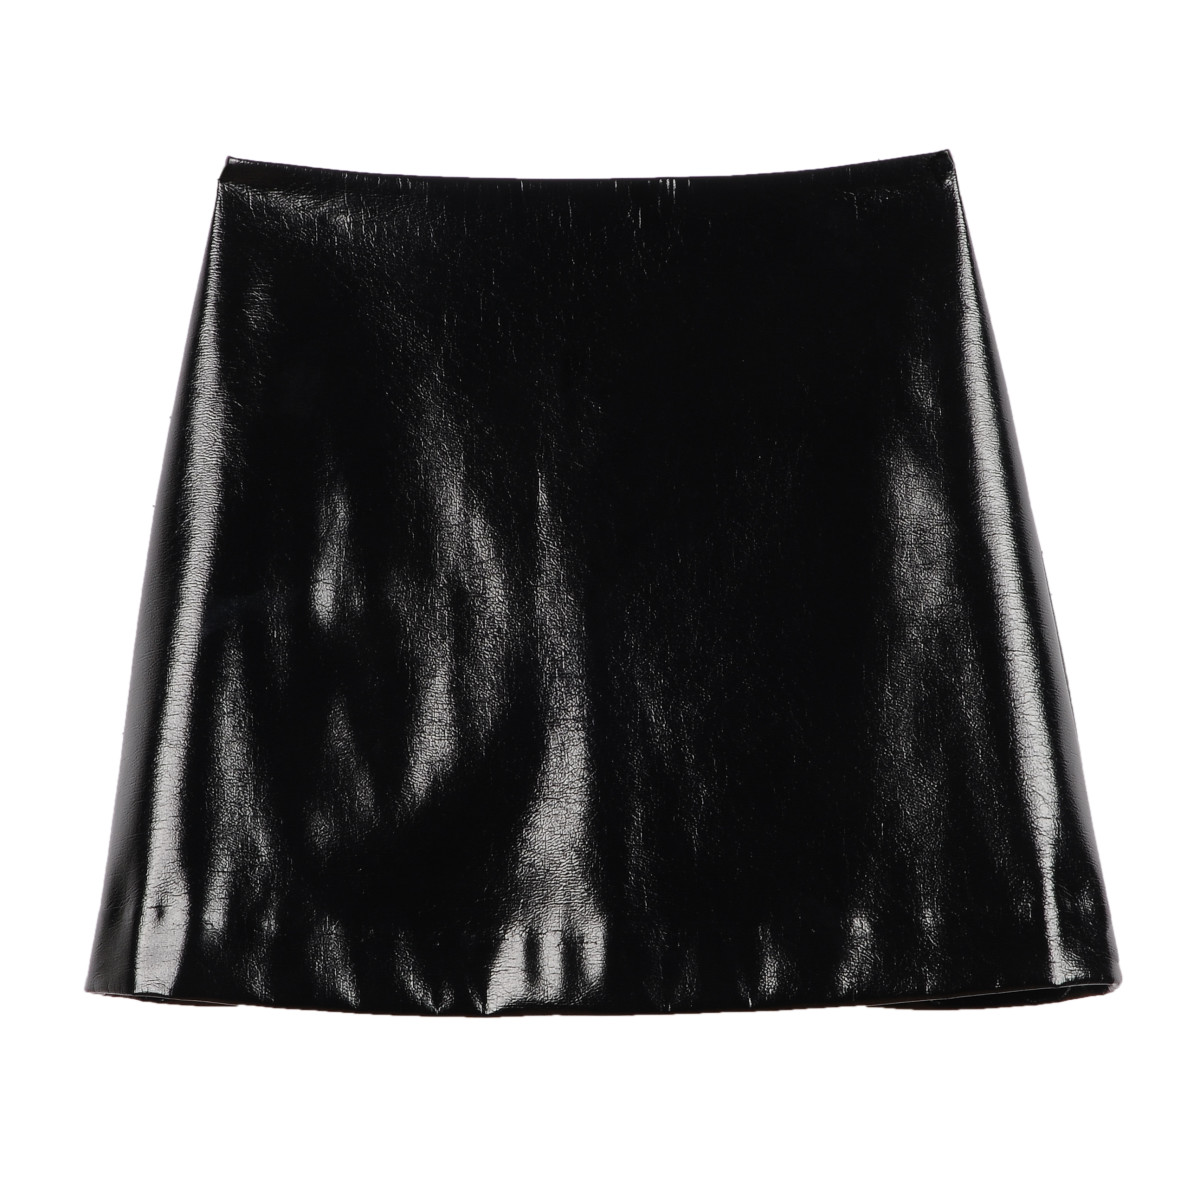 Black crackle patent A-line skirt, $49.90, available at Express.